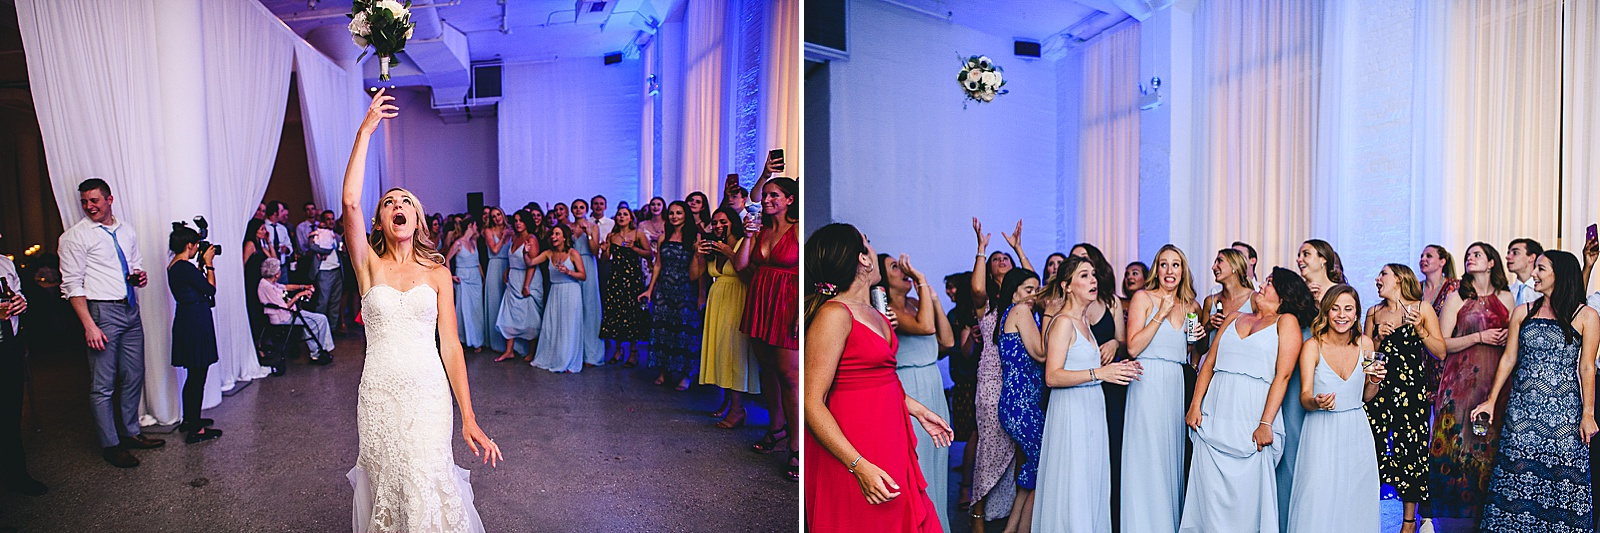 59 bouquet toss at wedding - Audrey + Jake's Beautiful Chicago Wedding at Chez